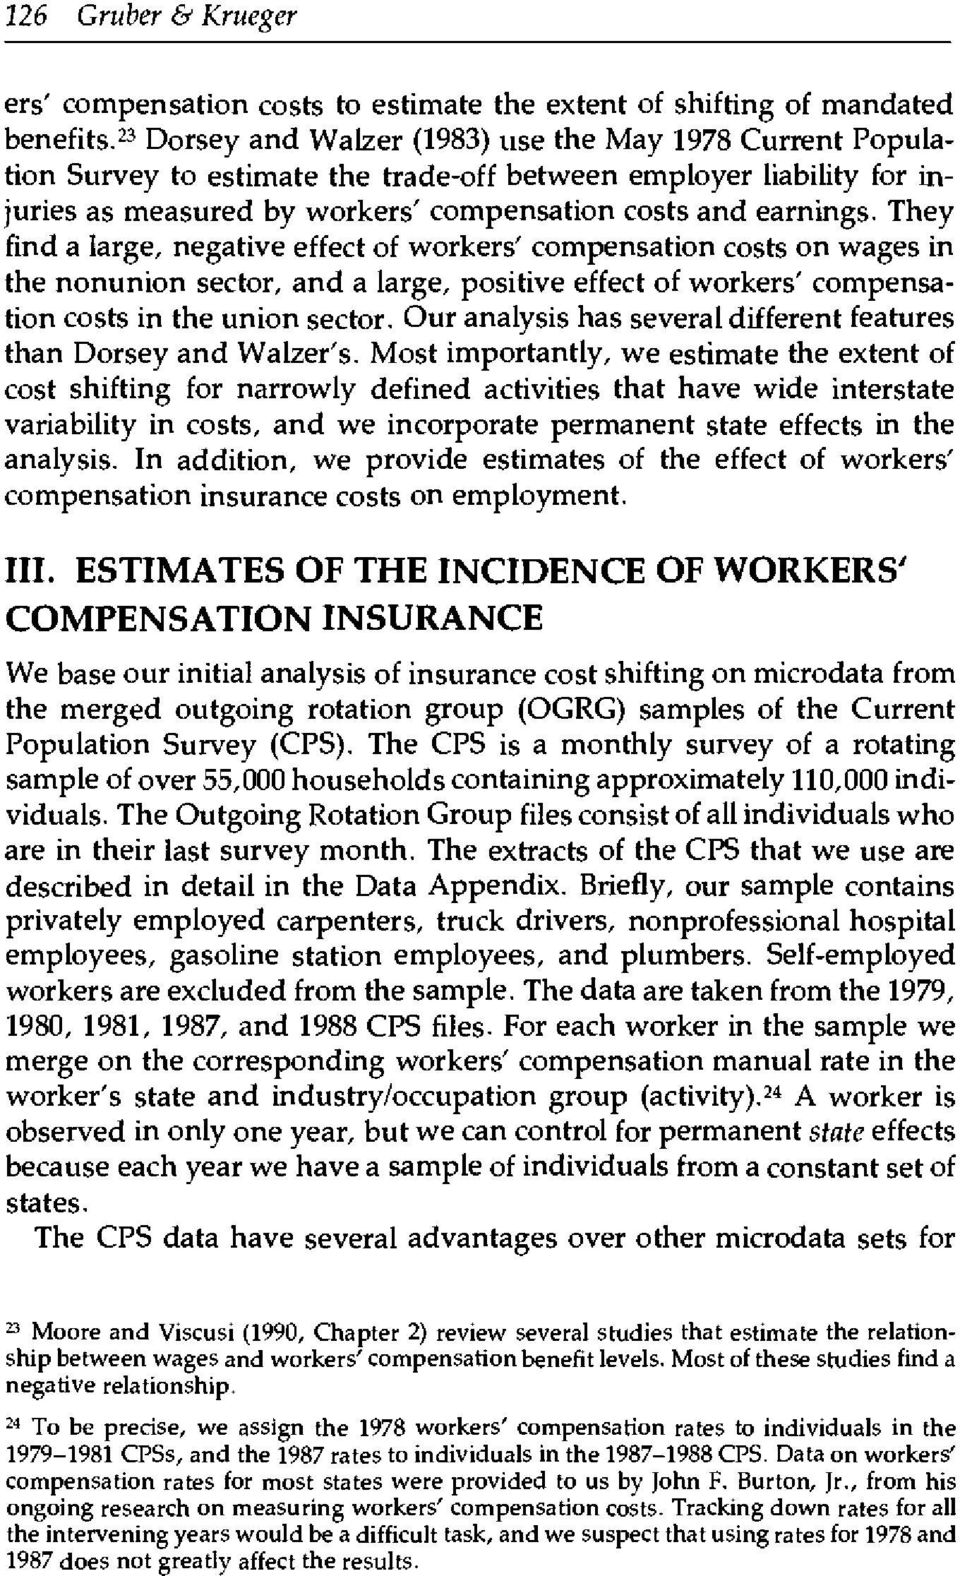 They find a large, negative effect of workers' compensation costs on wages in the nonunion sector, and a large, positive effect of workers' compensation costs in the union sector.